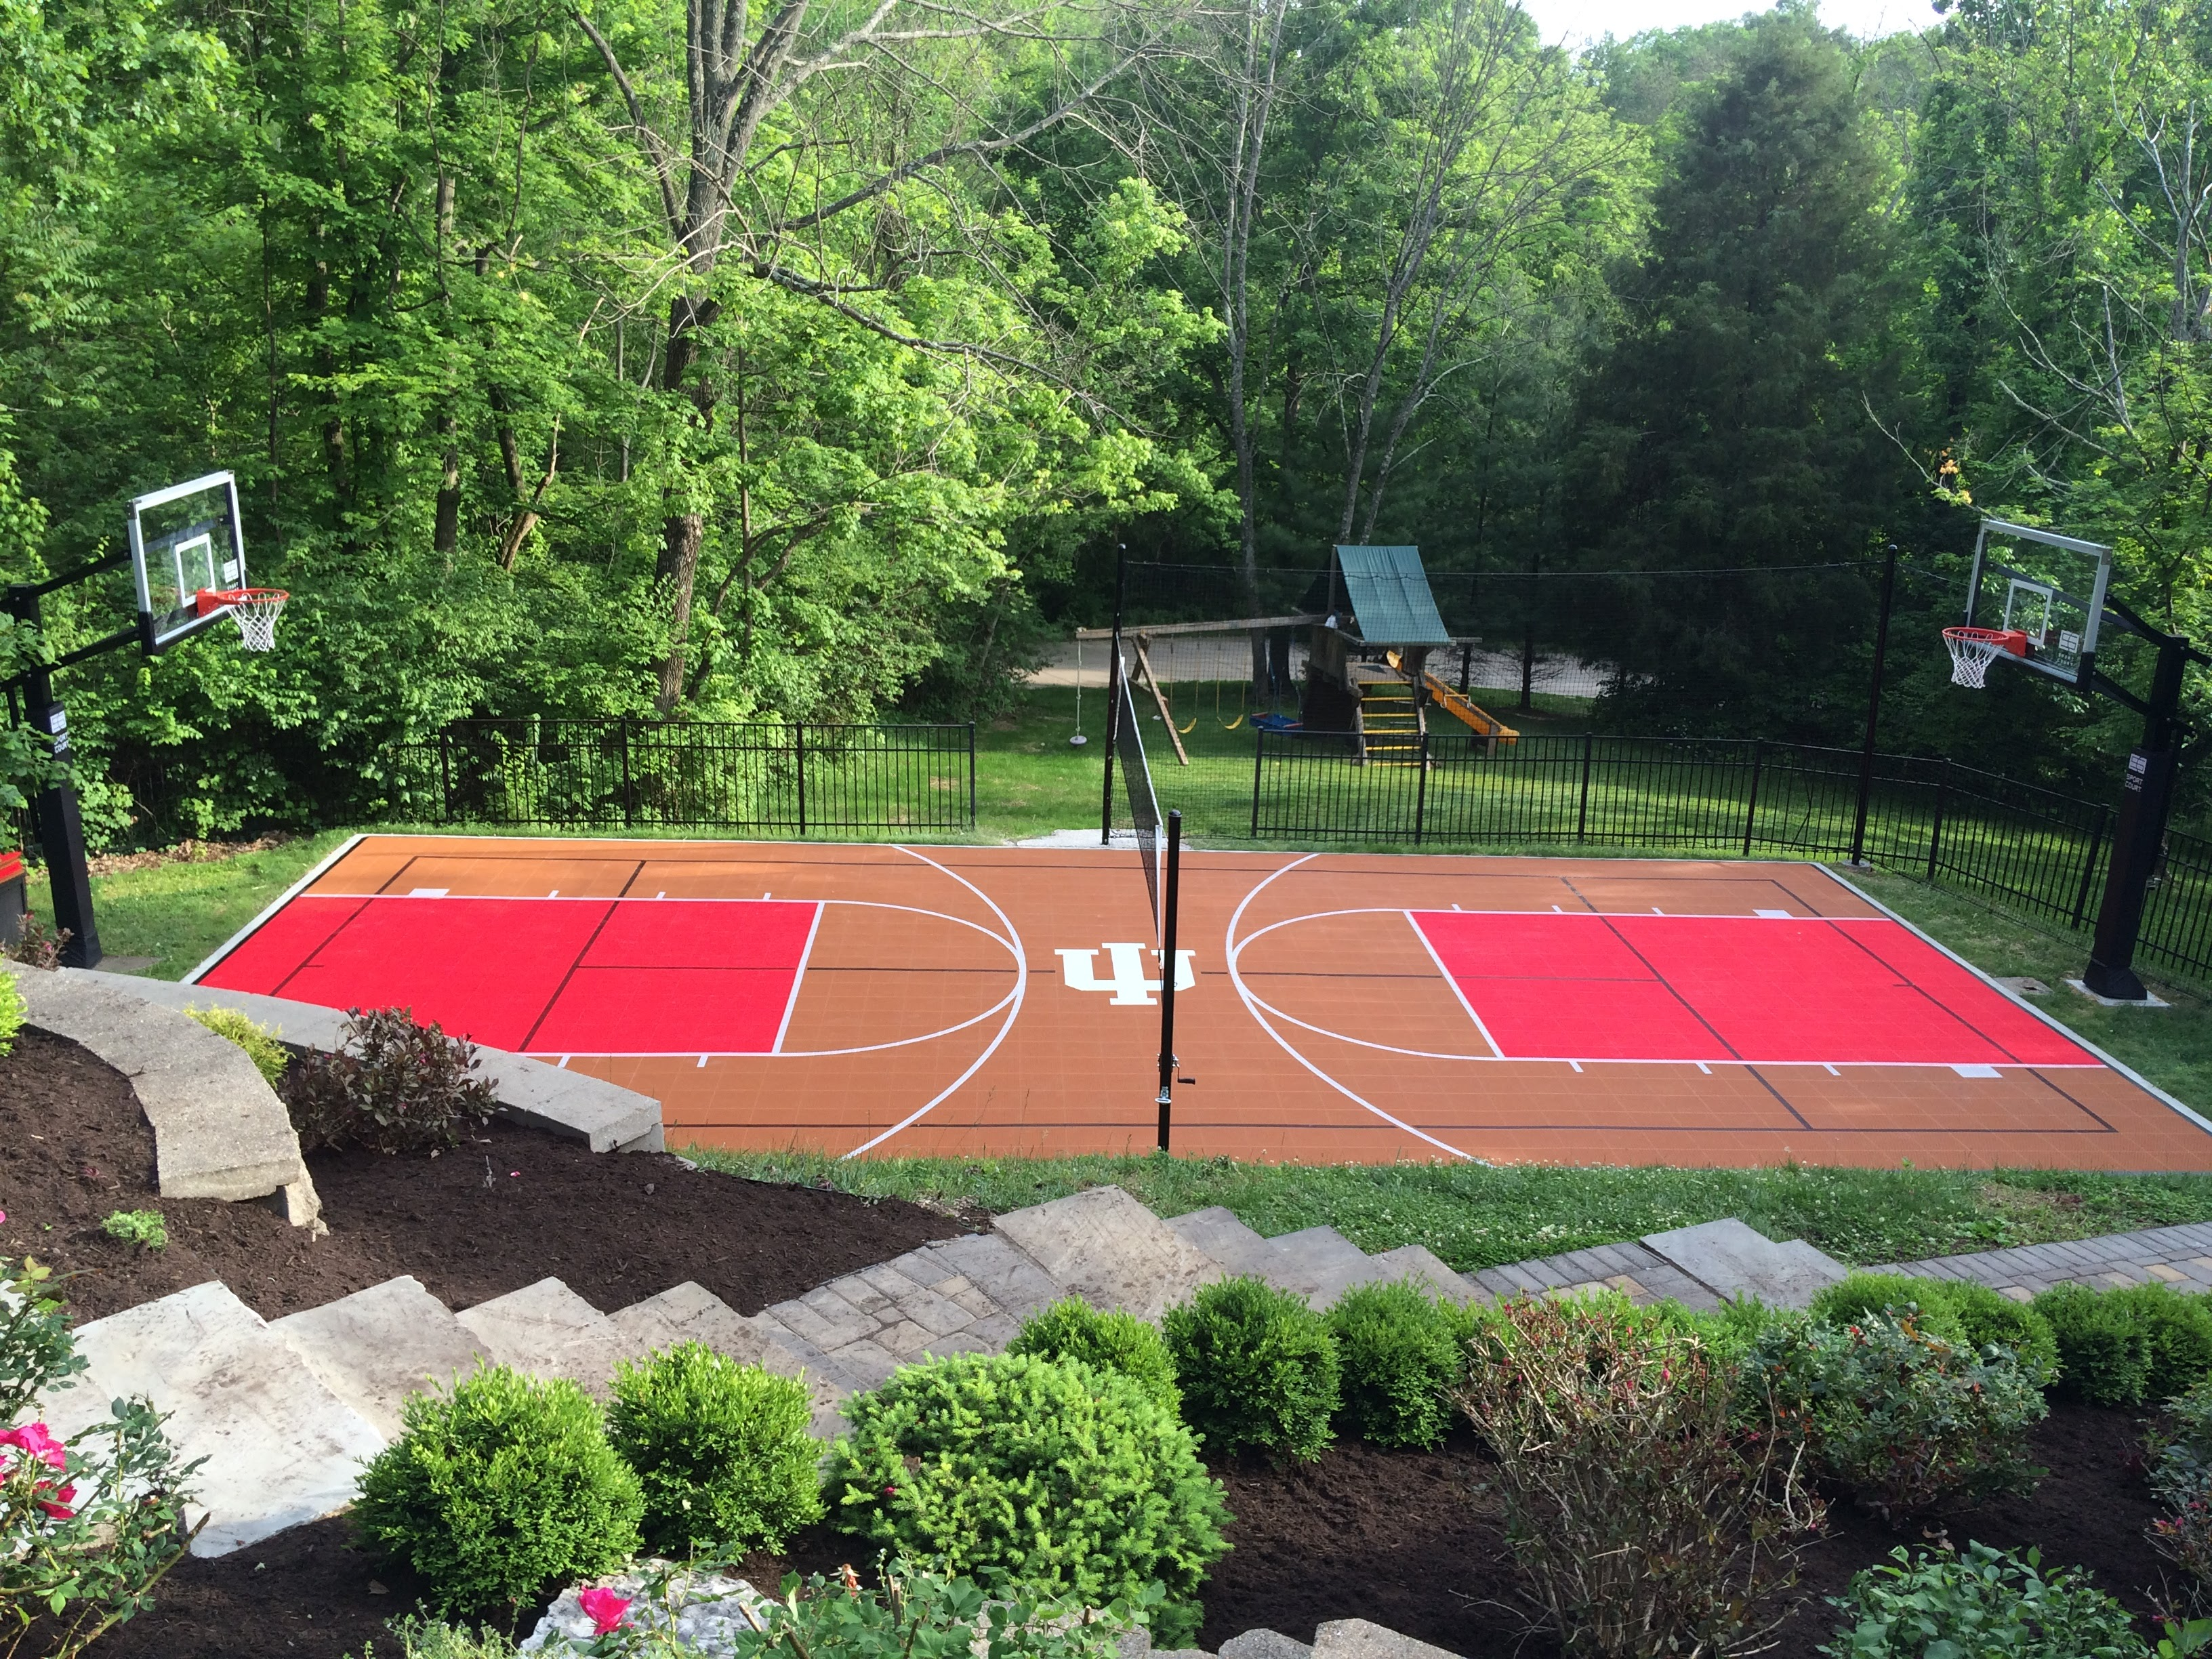 Choosing colors for your backyard court or home gym for Backyard sport court